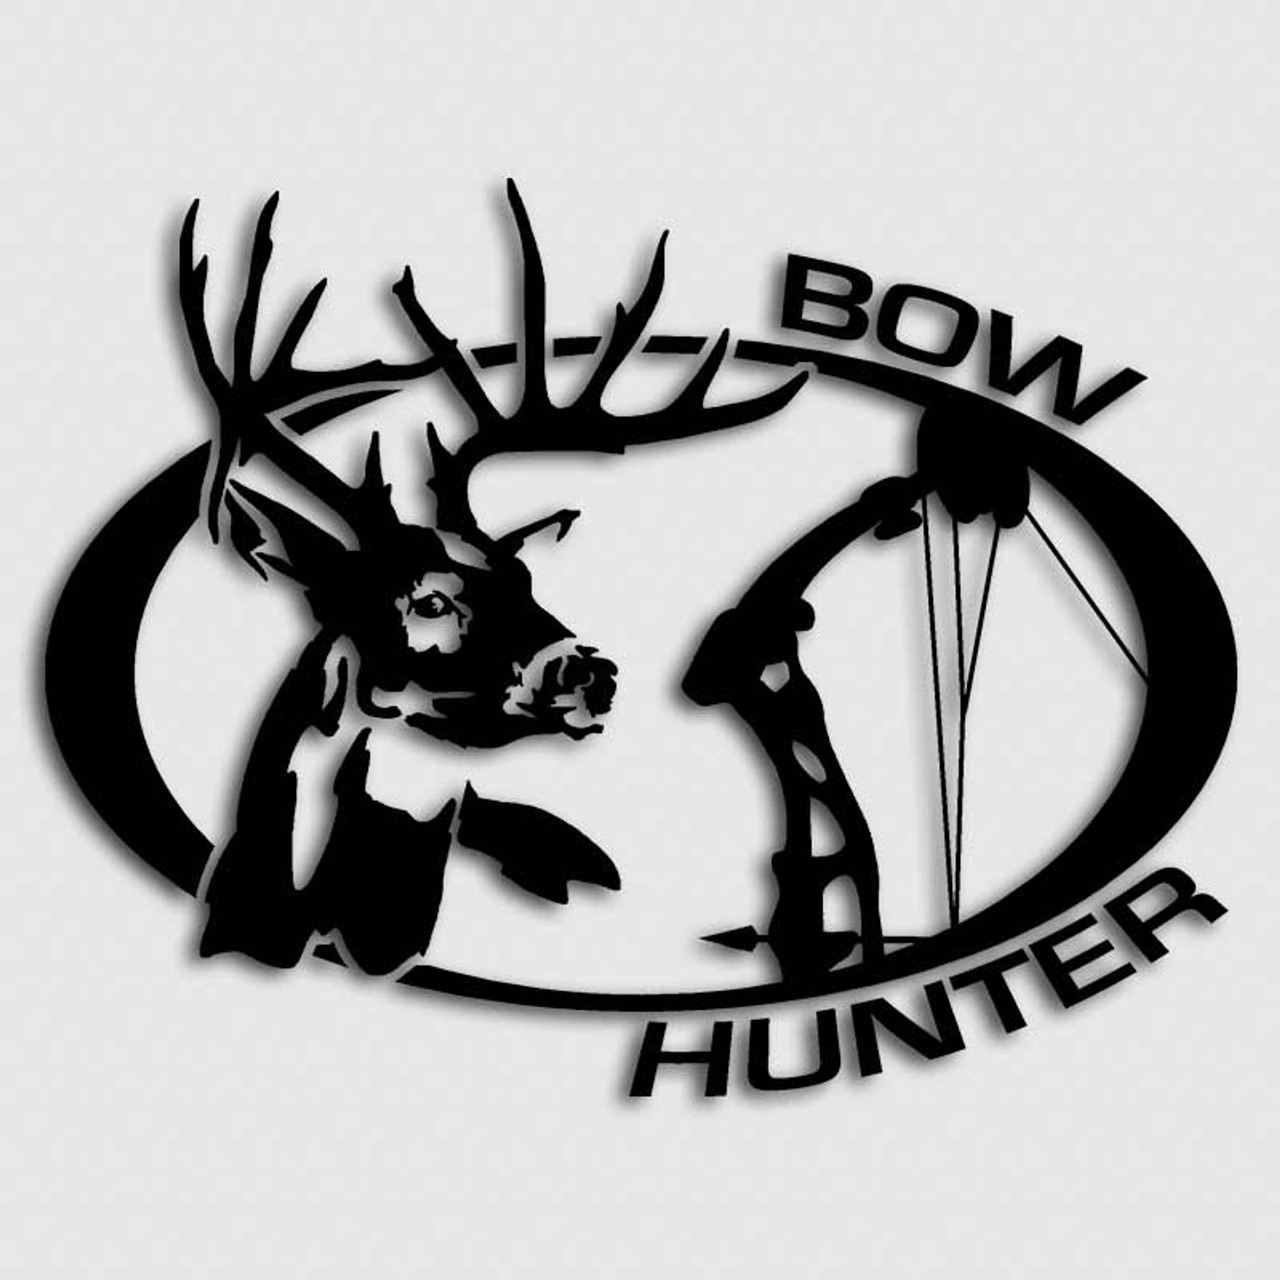 Archery Hunting Whitetail Deer Decals Bow Hunter Backwoods Stickers - Bow hunting decals for trucks